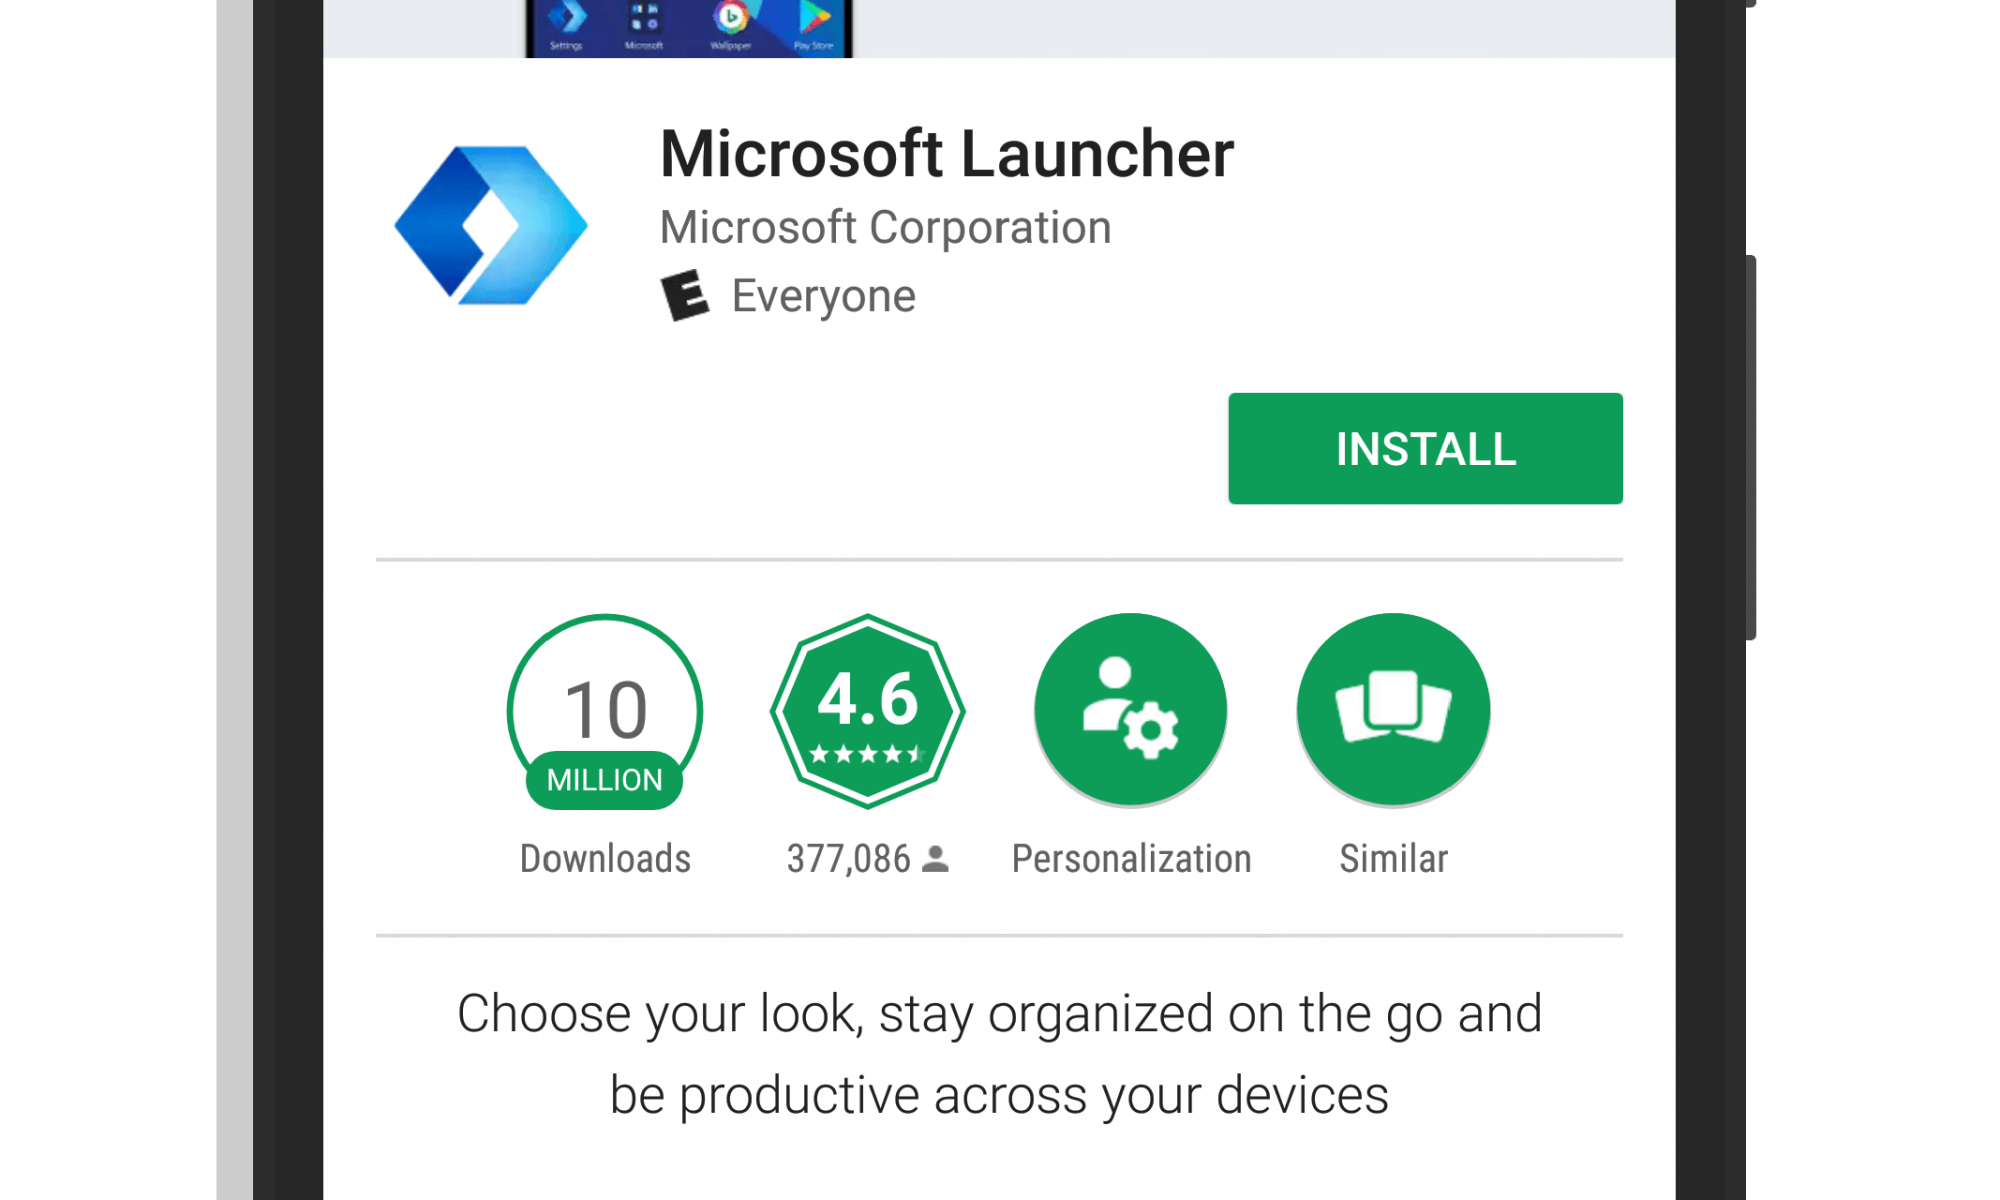 Microsoft Launcher in Google Play Store